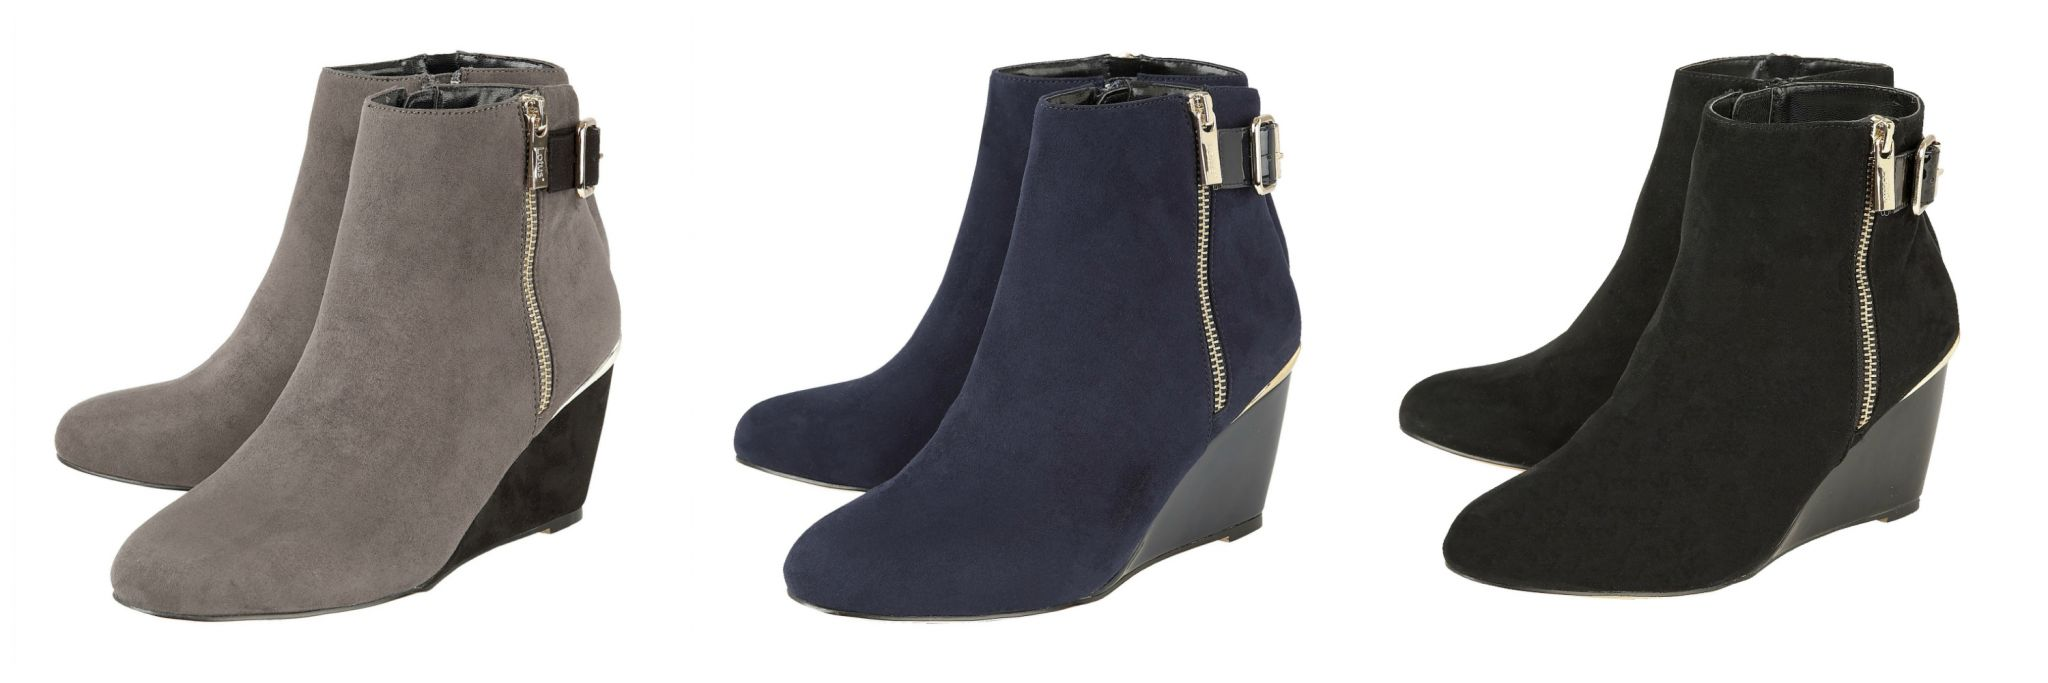 what-lizzy-loves-how-to-style-high-heeled-wedge-ankle-boots-navy-black-grey-Cassia-lotus